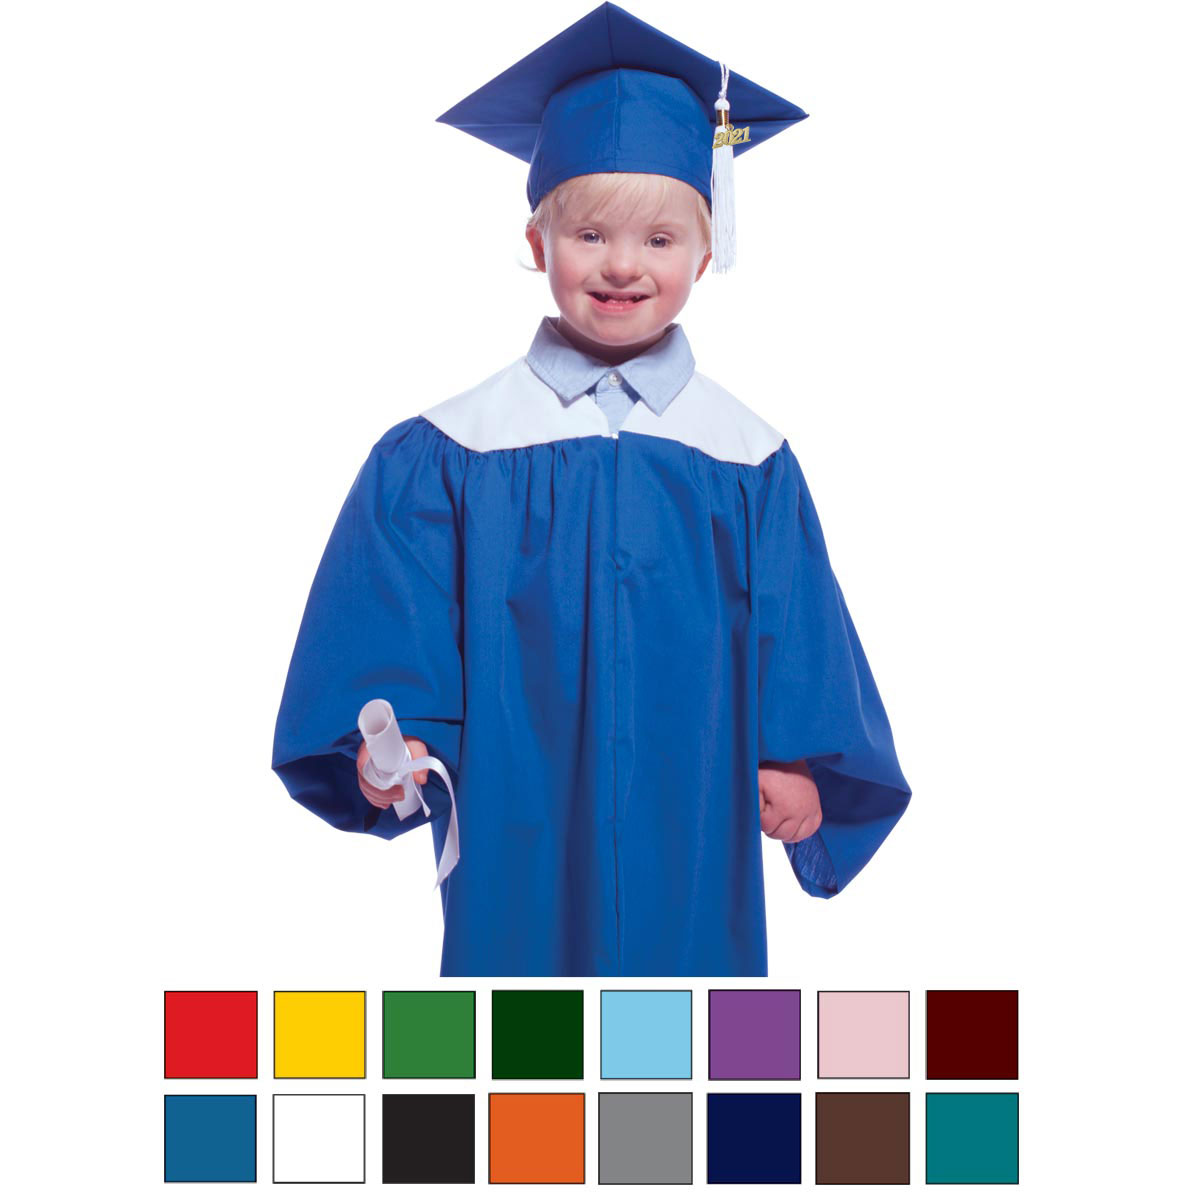 Two-color Graduation Gown | Rhyme University\'s